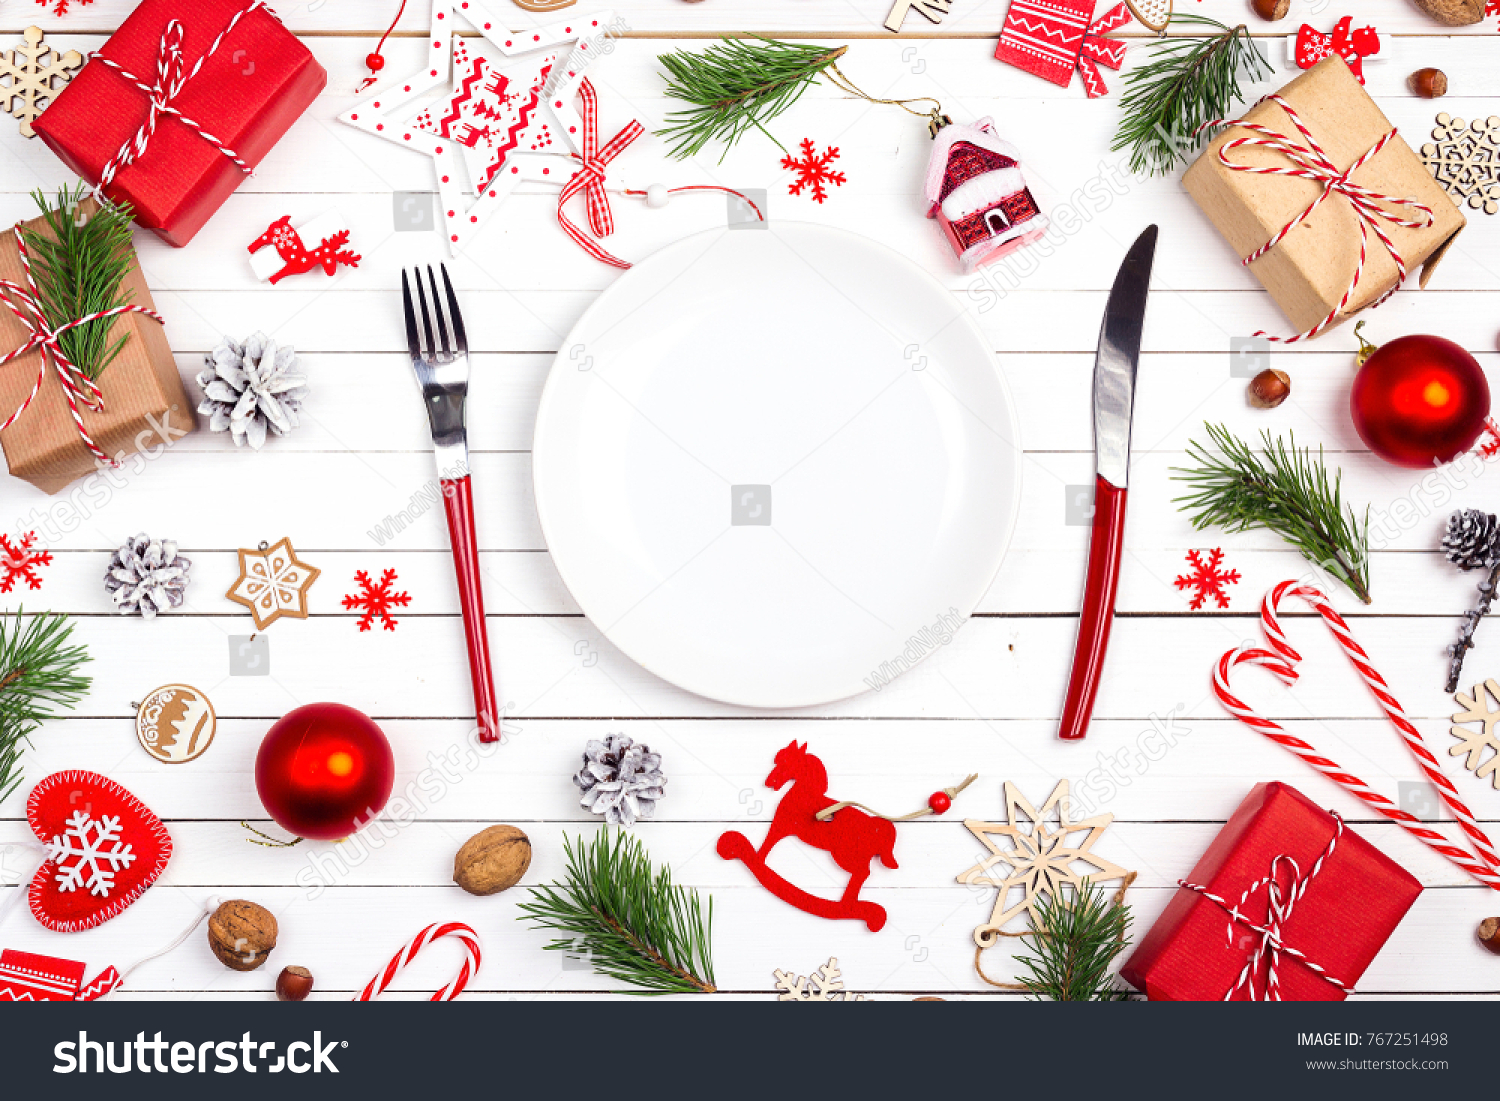 Festive Table Setting Cutlery Christmas Decorations Stock Photo ...